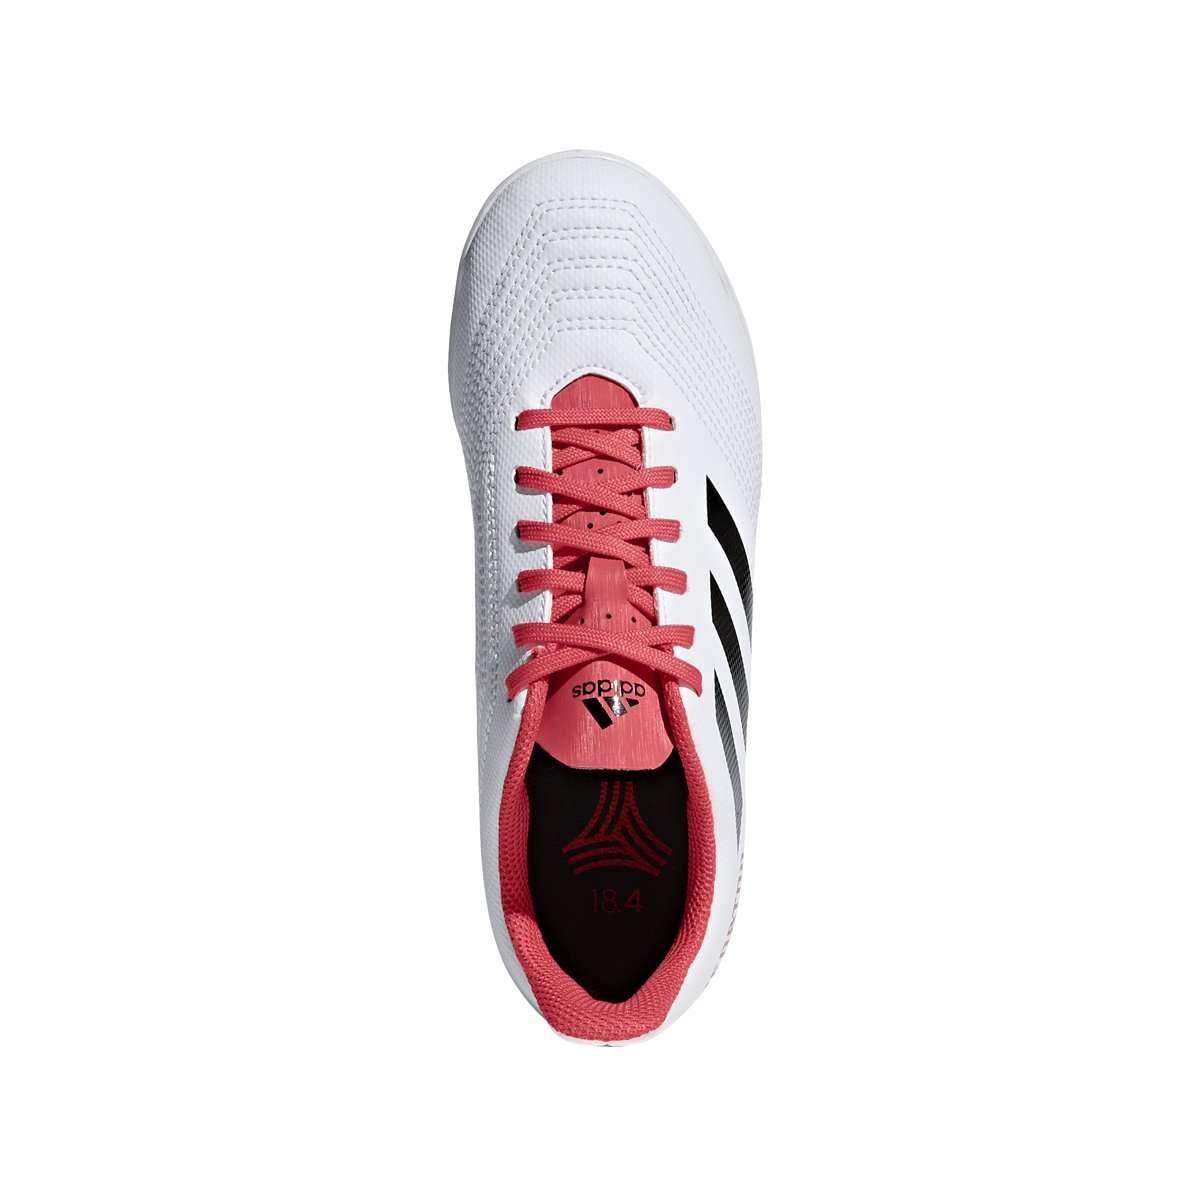 super popular e76d9 58e76 ... adidas Predator Tango 18.4 Youth Indoor Shoes - League Outfitters ...